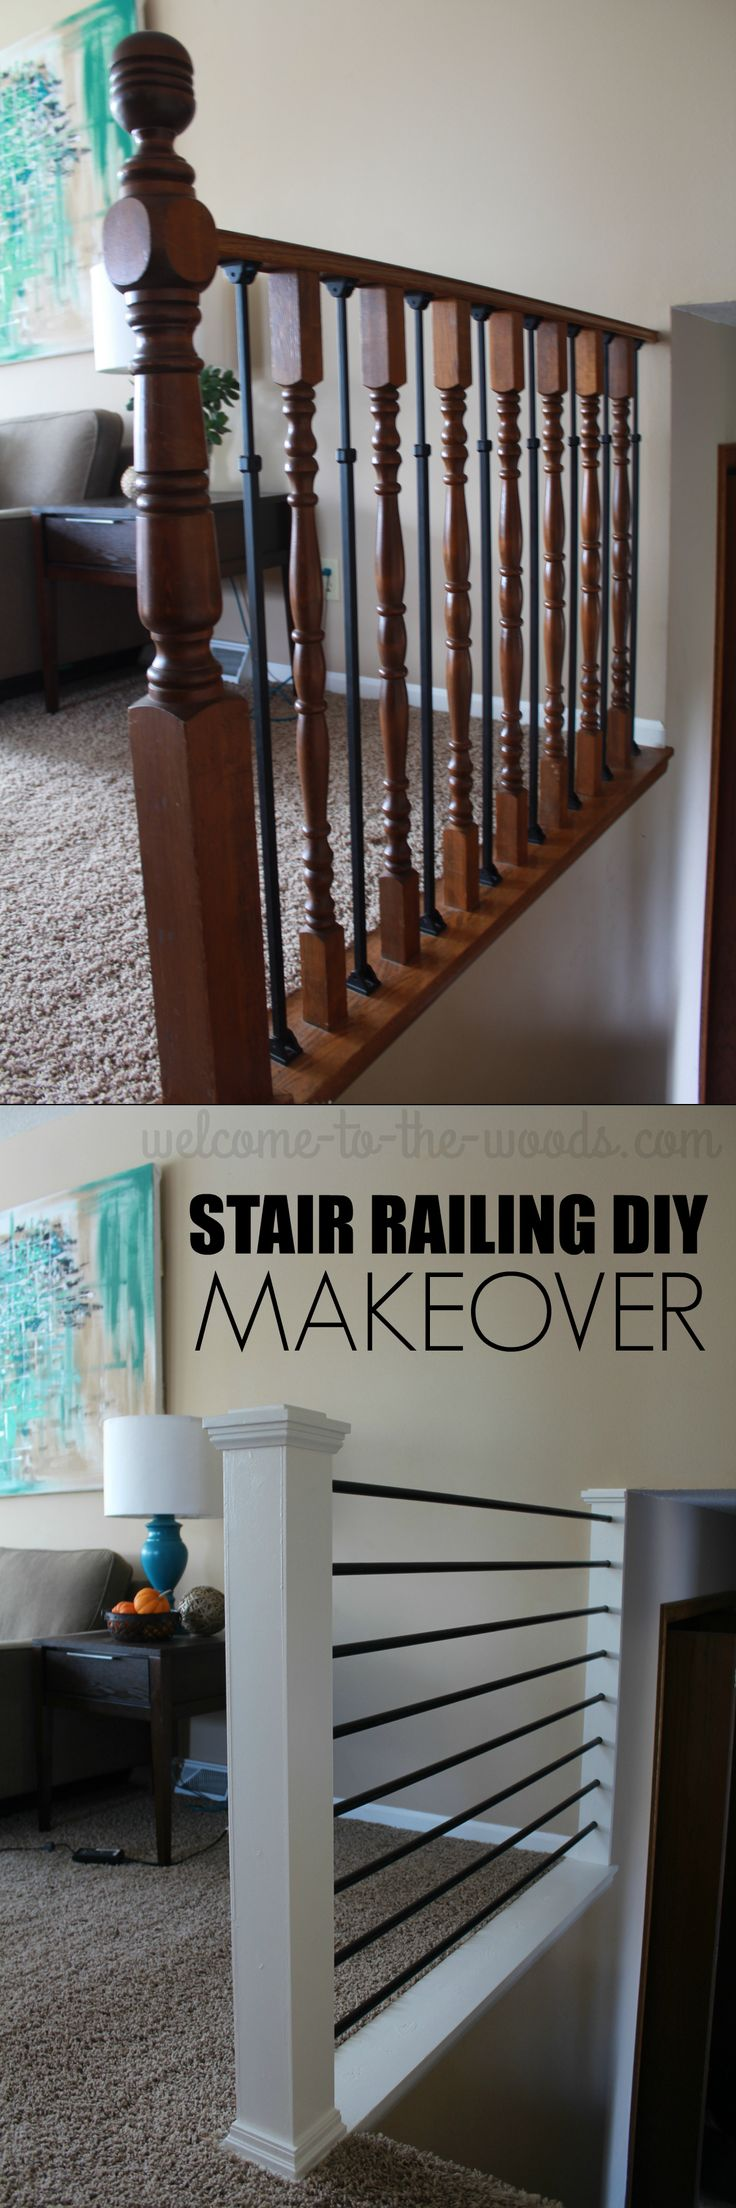 Before and After Stair Railing DIY Makeover. This mommy blogger transformed an outdated oak baluster into a sleek, modern design!